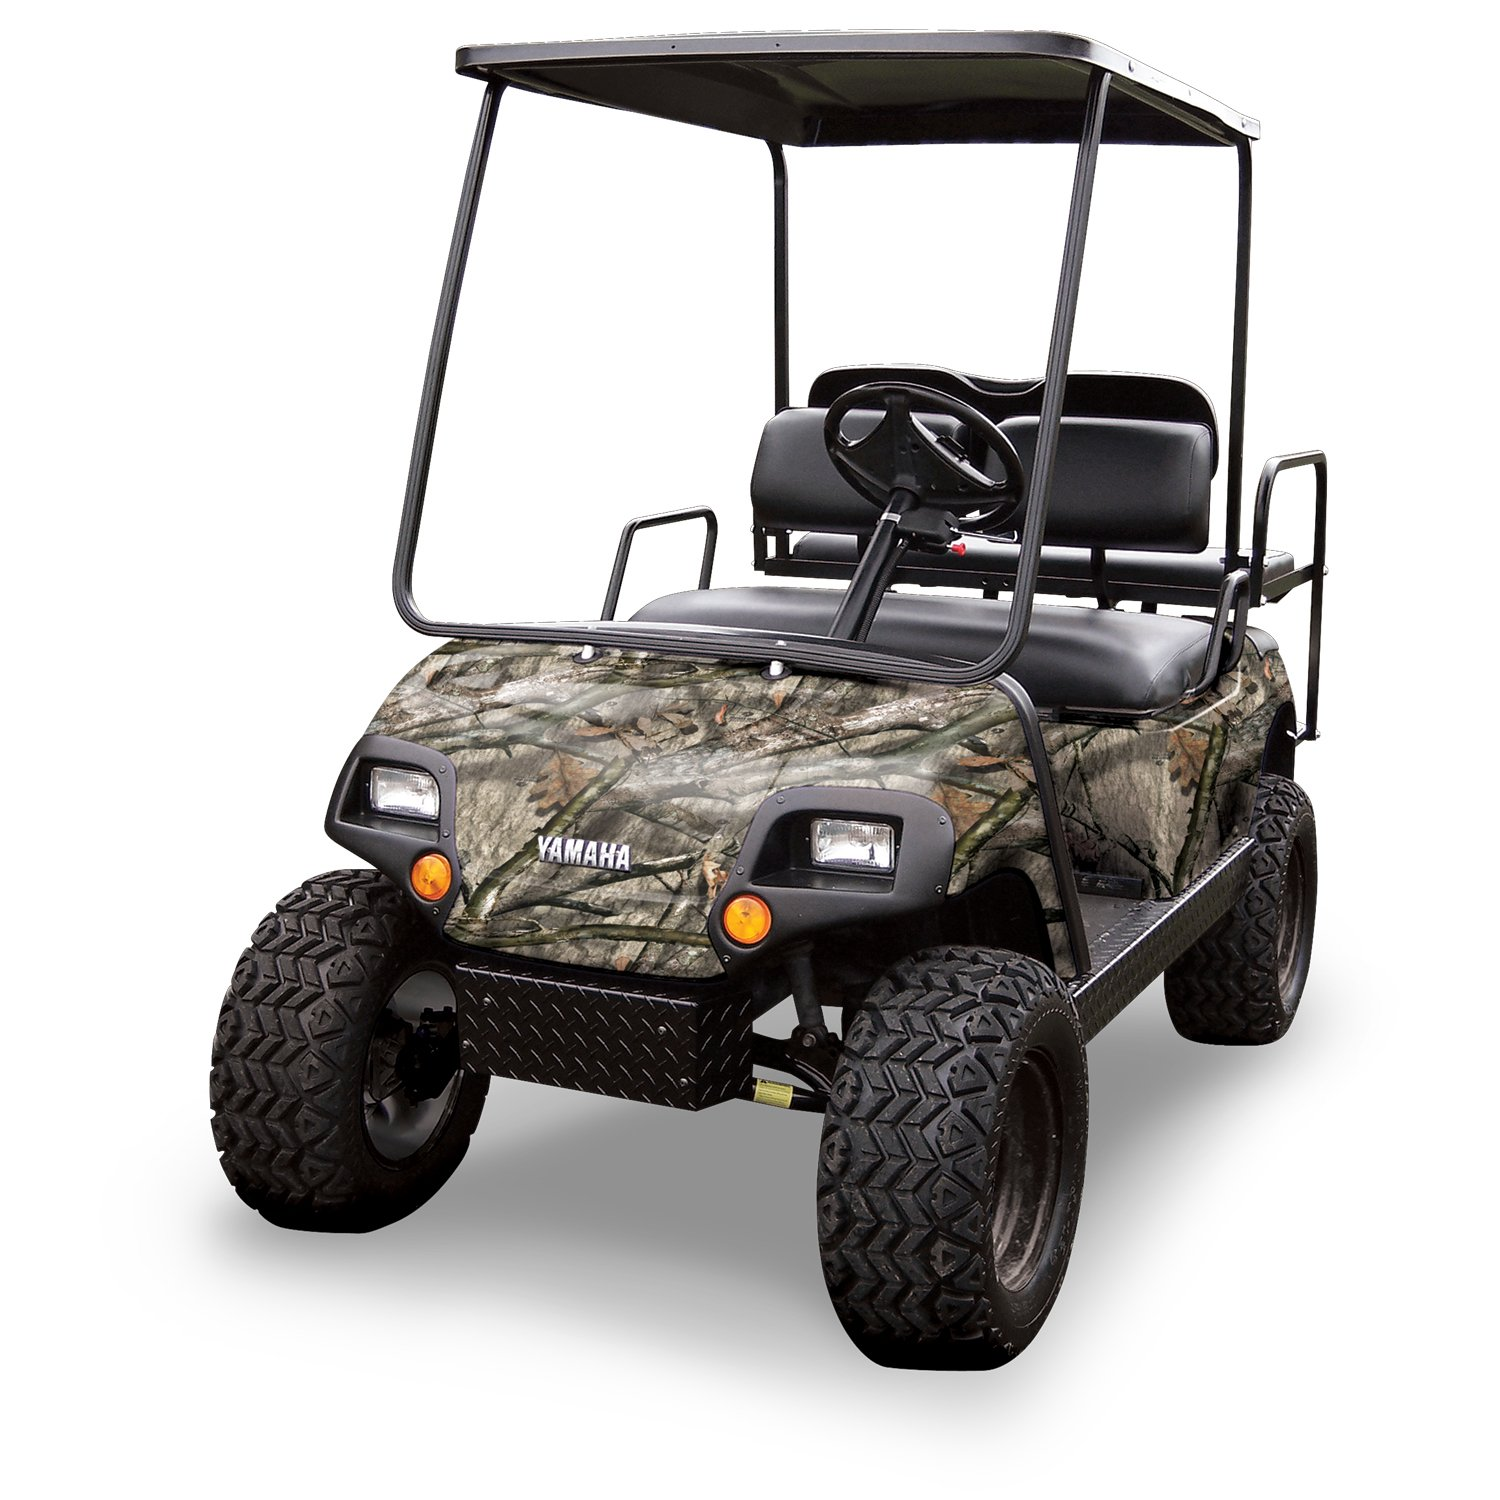 Mossy Oak Graphics (10060-TS) Treestand 4' x 10' Roll Golf Cart Camouflage Kit